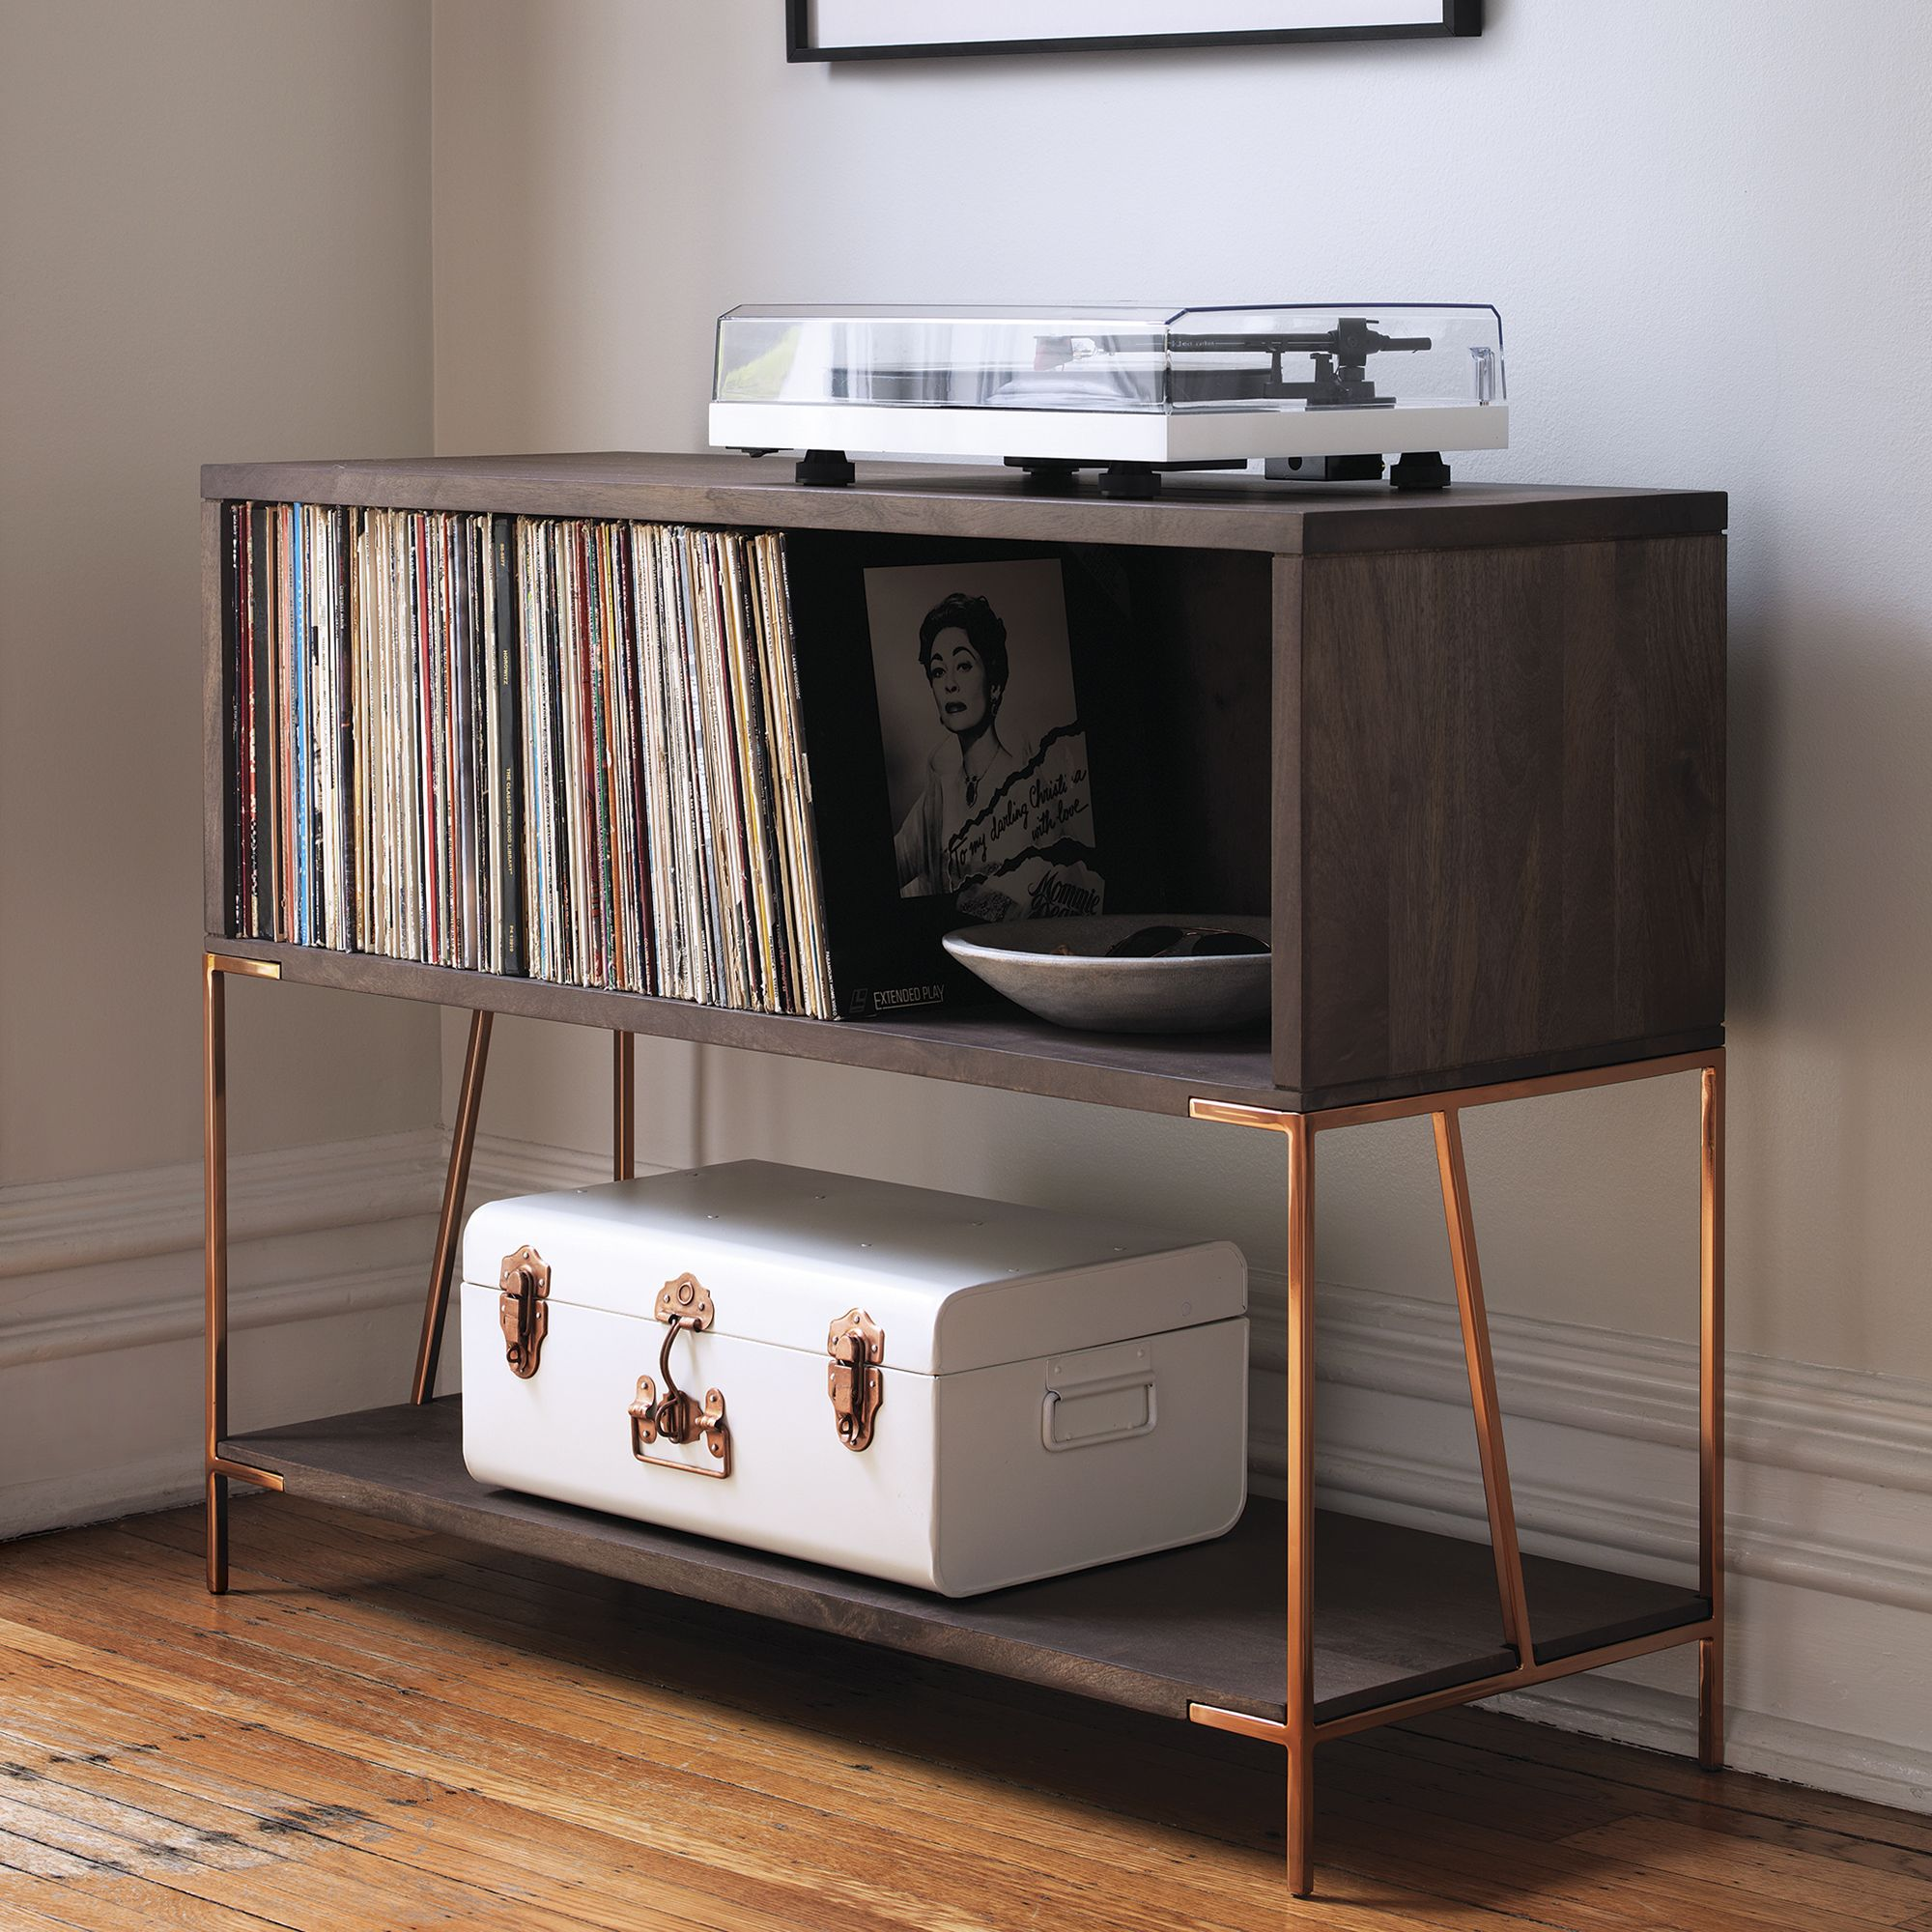 Crosley Manchester Entertainment Stand: This Is A Nice, Retro Piece That  Works As Both A Side Table And Record Storage Piece. Itu0027ll Hold About 50  LPs And Is ...